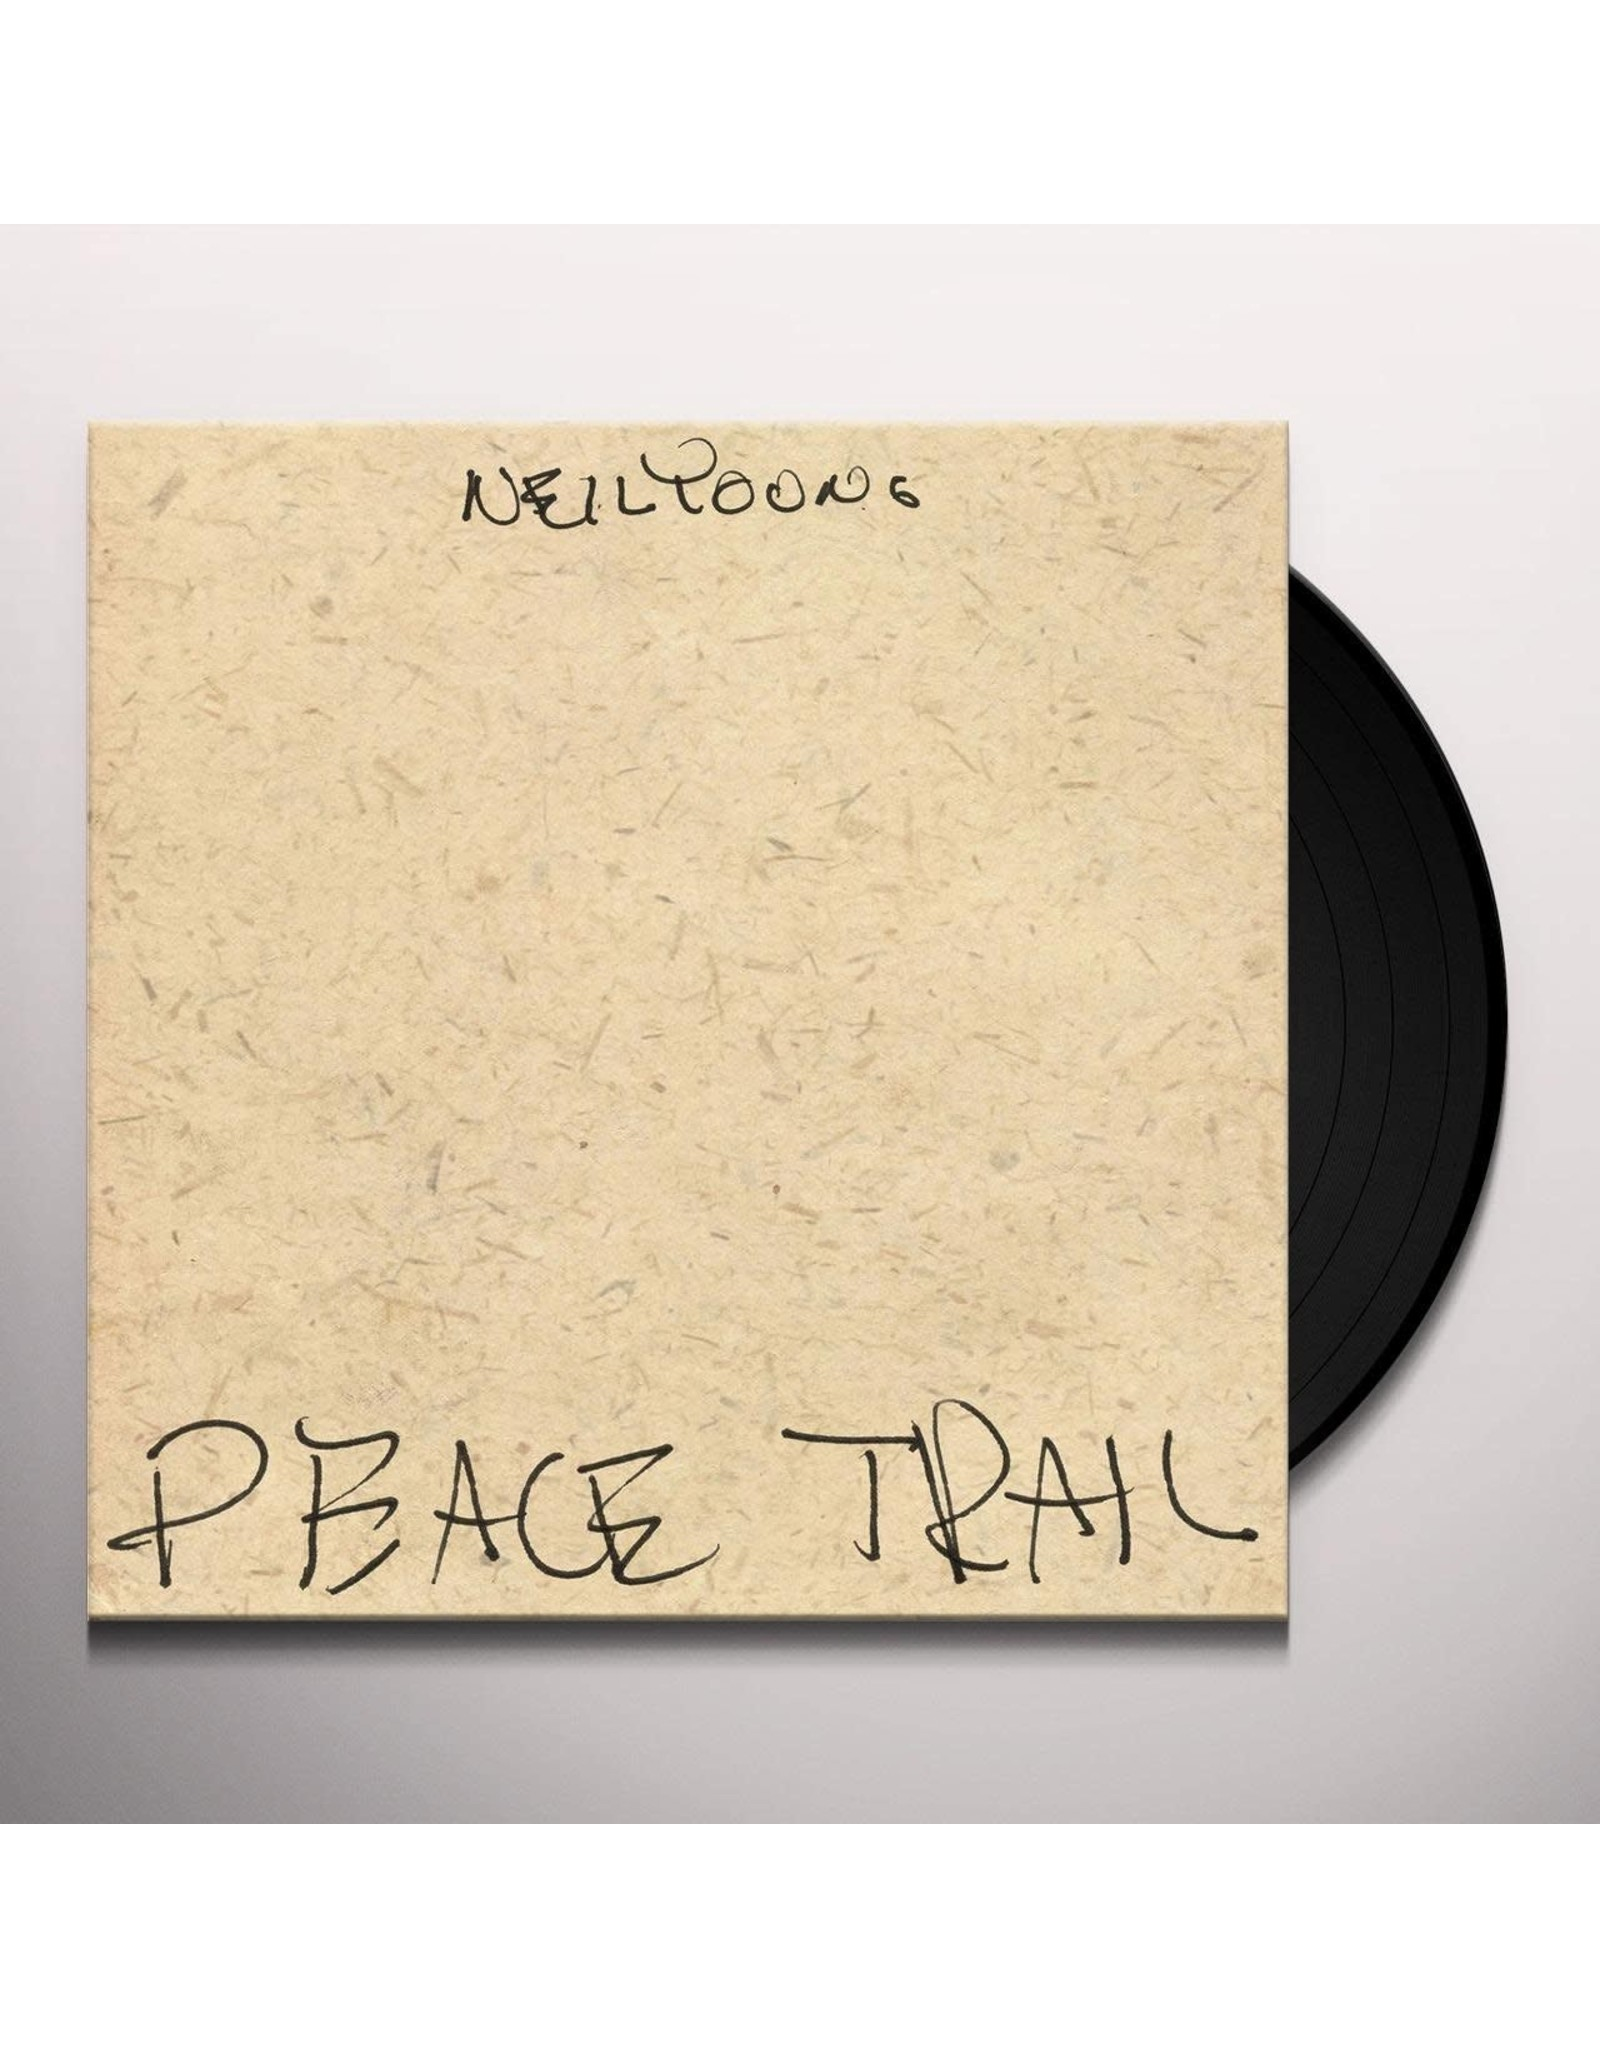 Young, Neil - Peace Trail LP